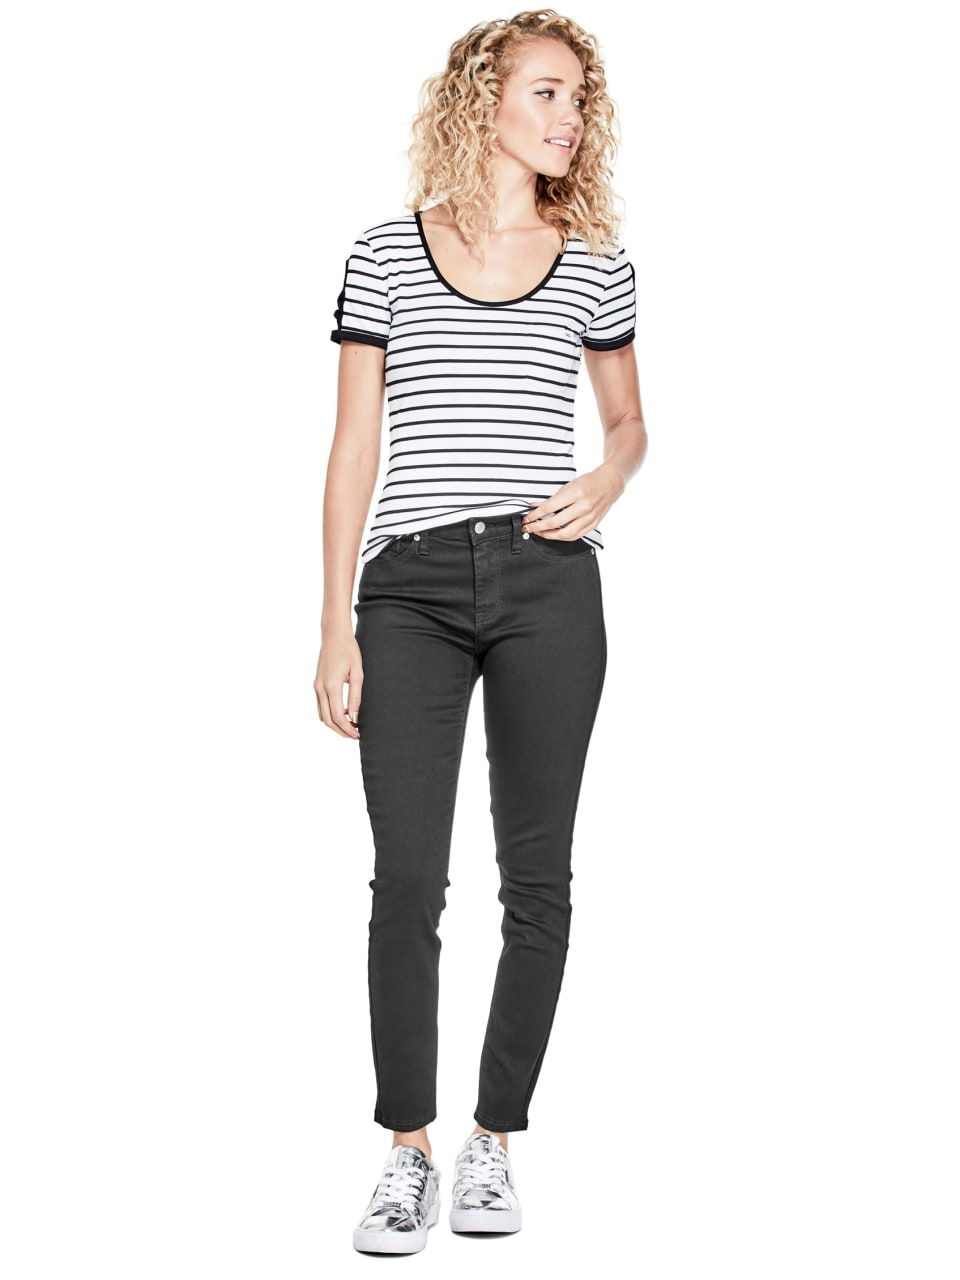 GUESS-Factory-Women-039-s-Nico-Striped-Cutout-Scoop-Neck-Short-Sleeve-Tee thumbnail 6